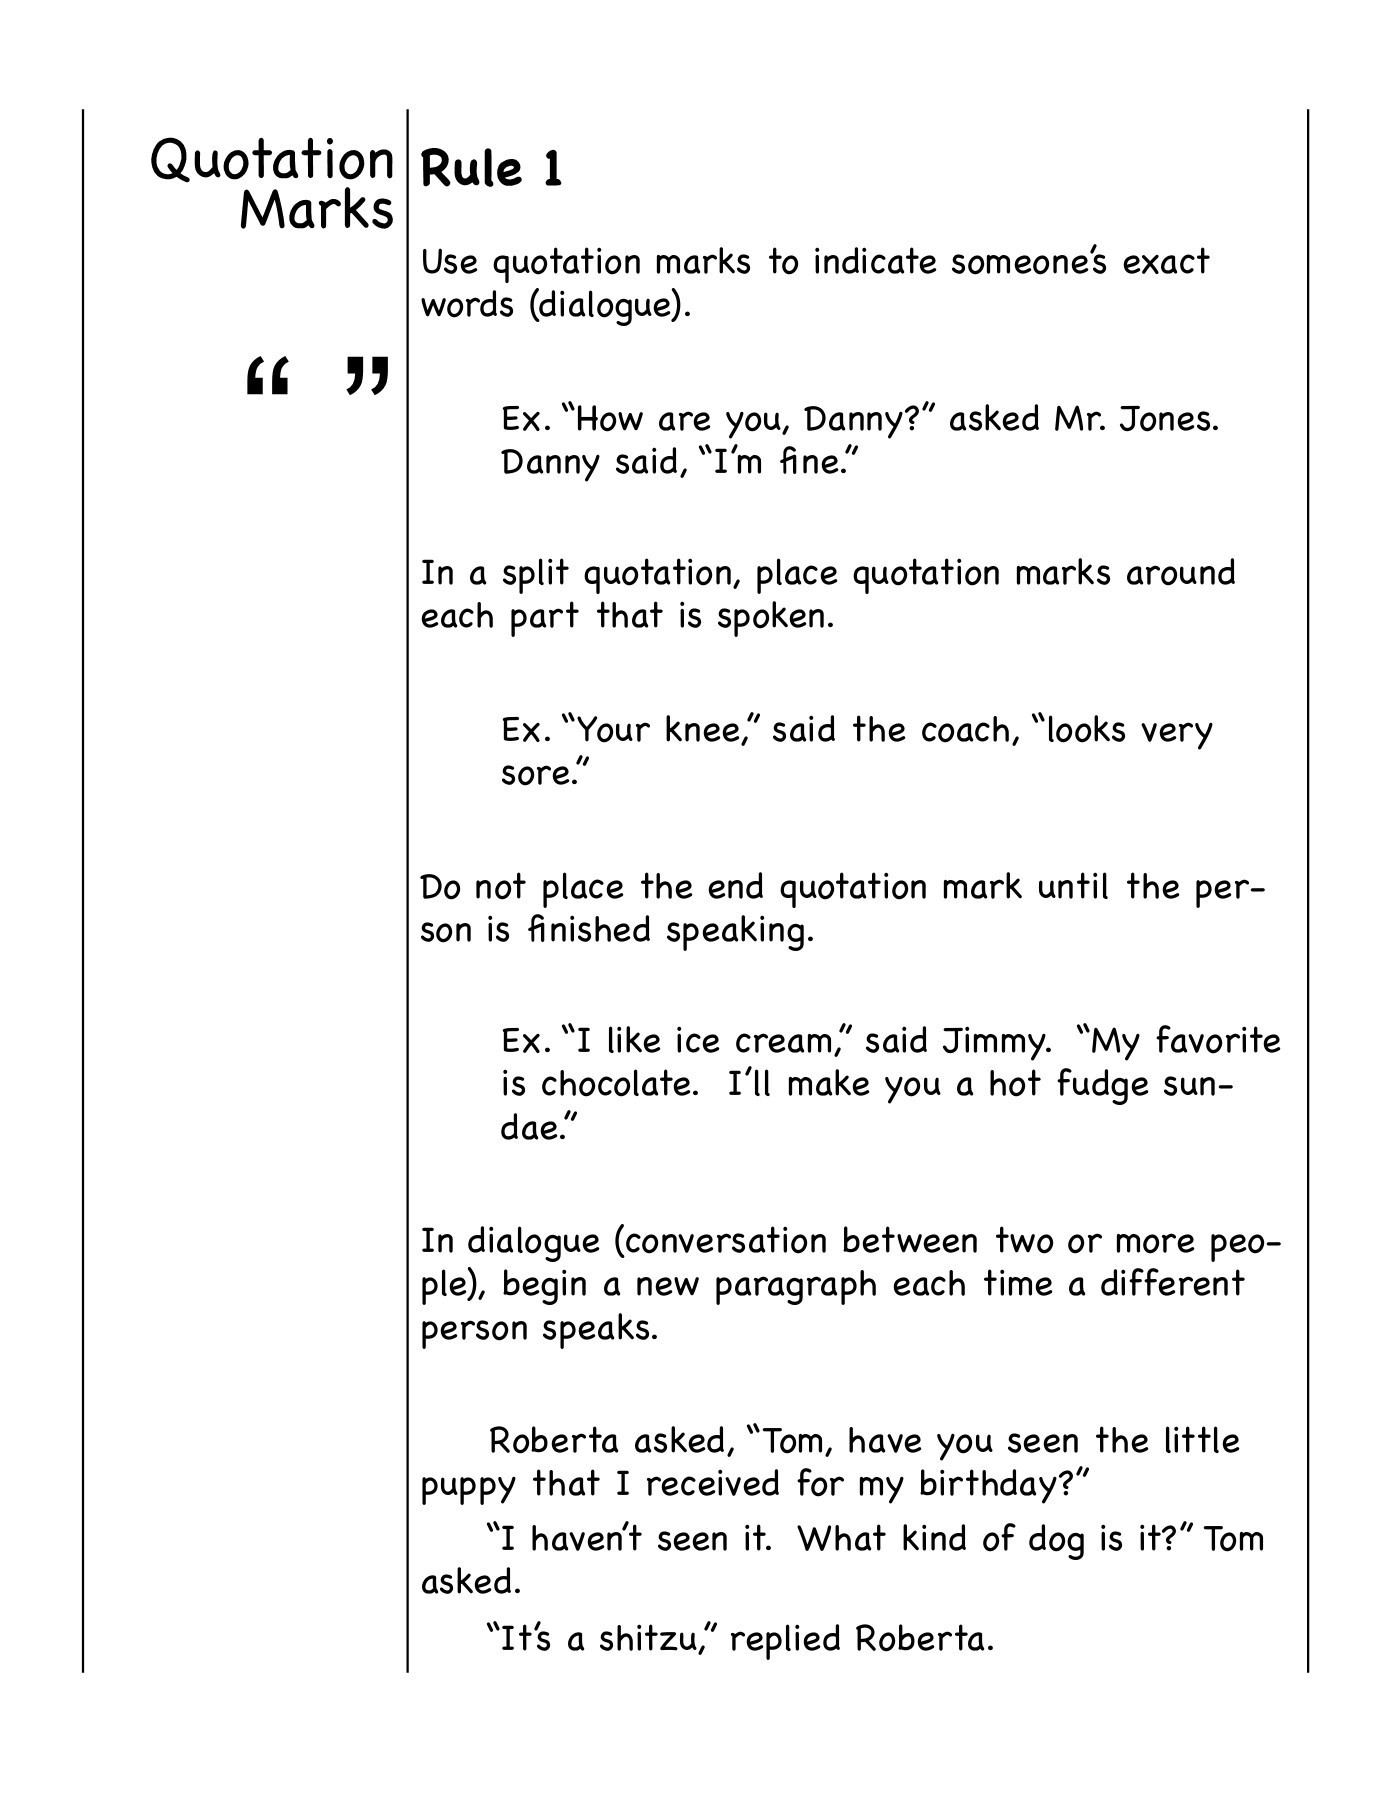 Rules For Using Quotation Marks In Dialogue